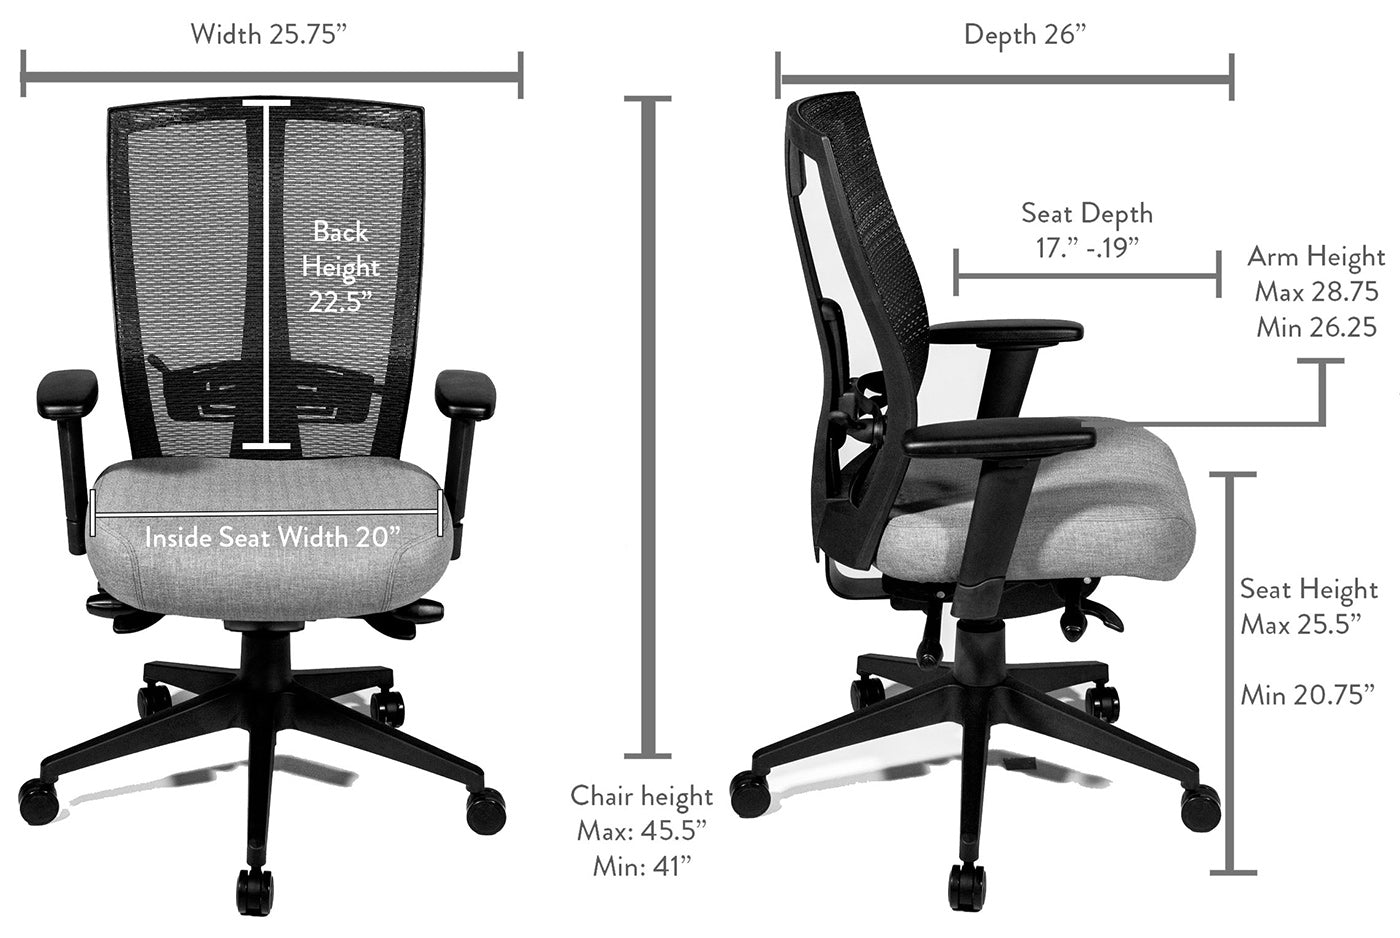 seating inc chair dimensions